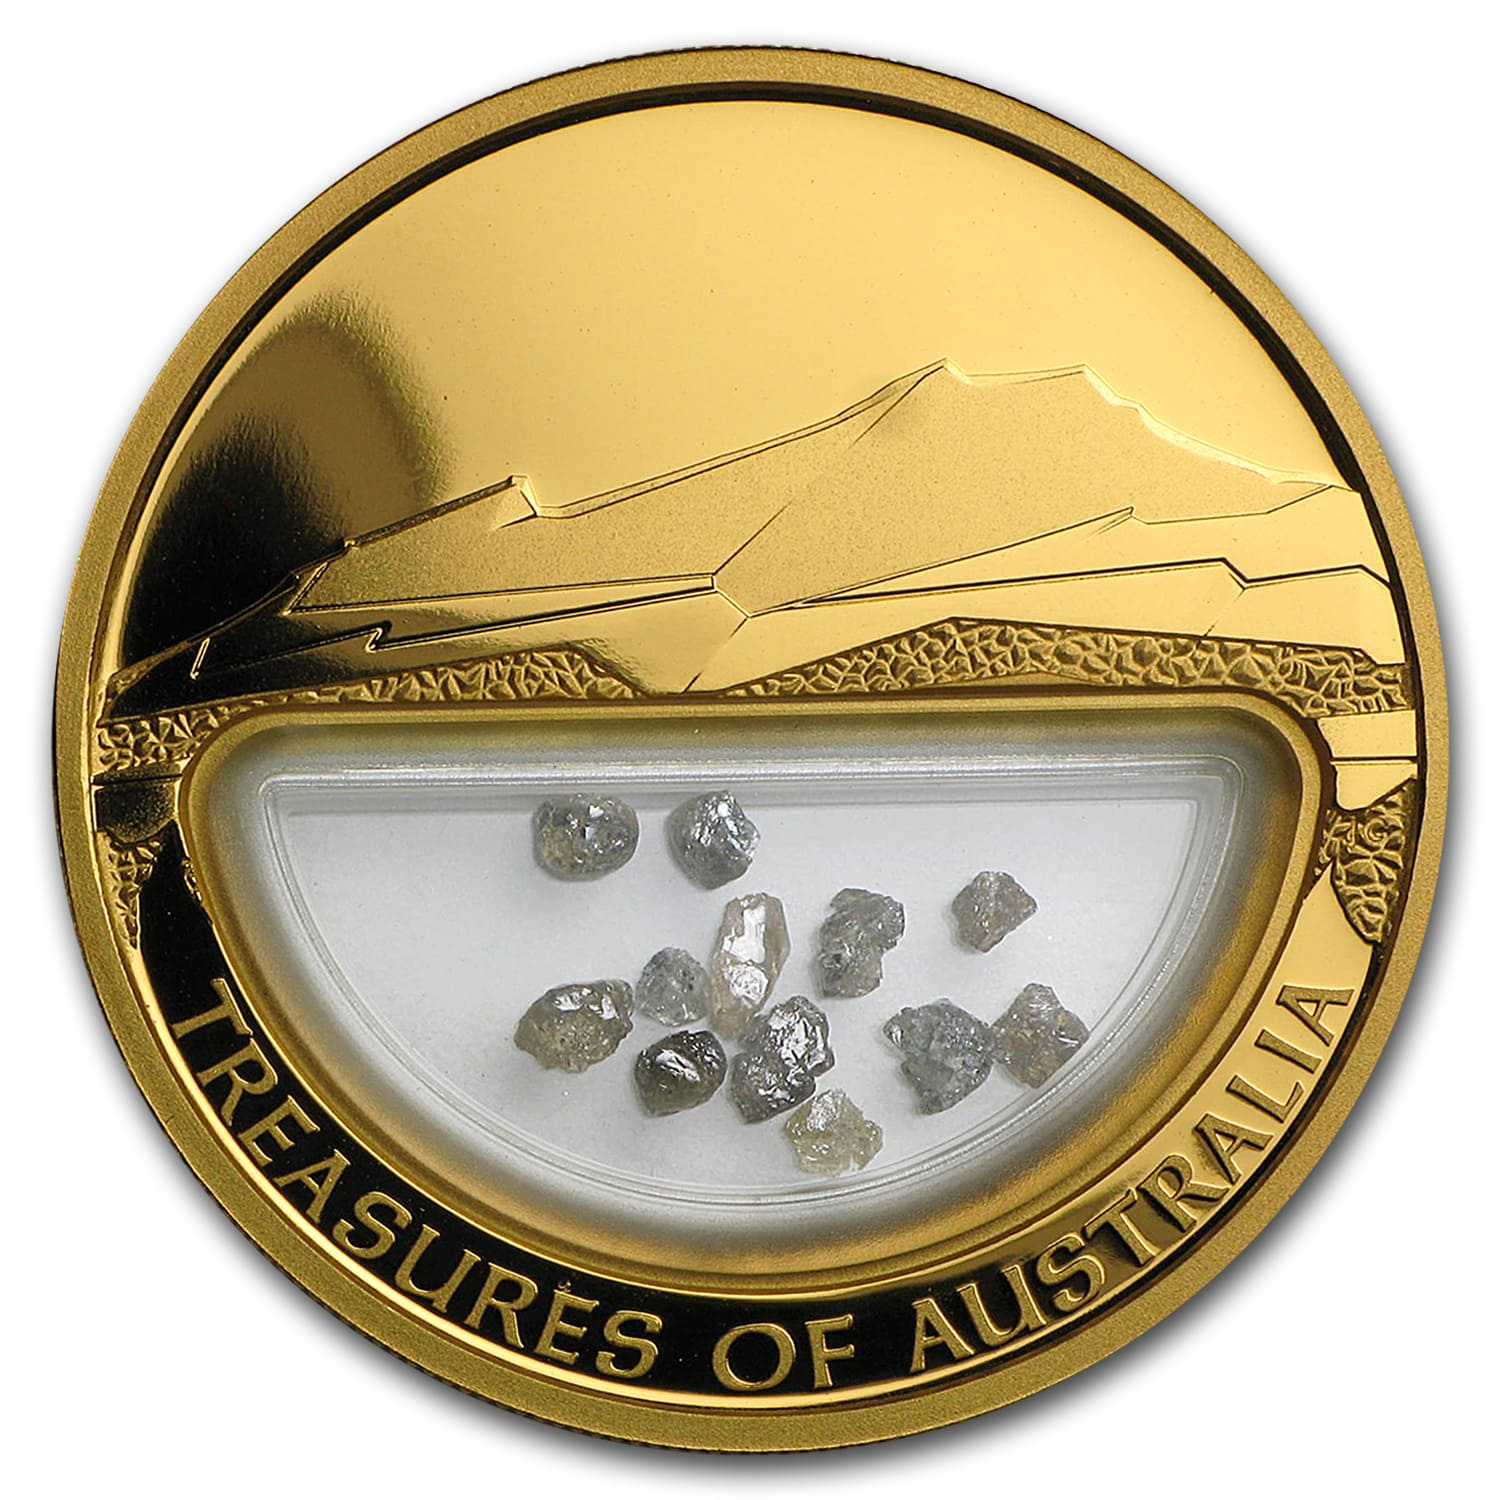 2009 1 oz Proof Gold Diamonds Treasures of Australia